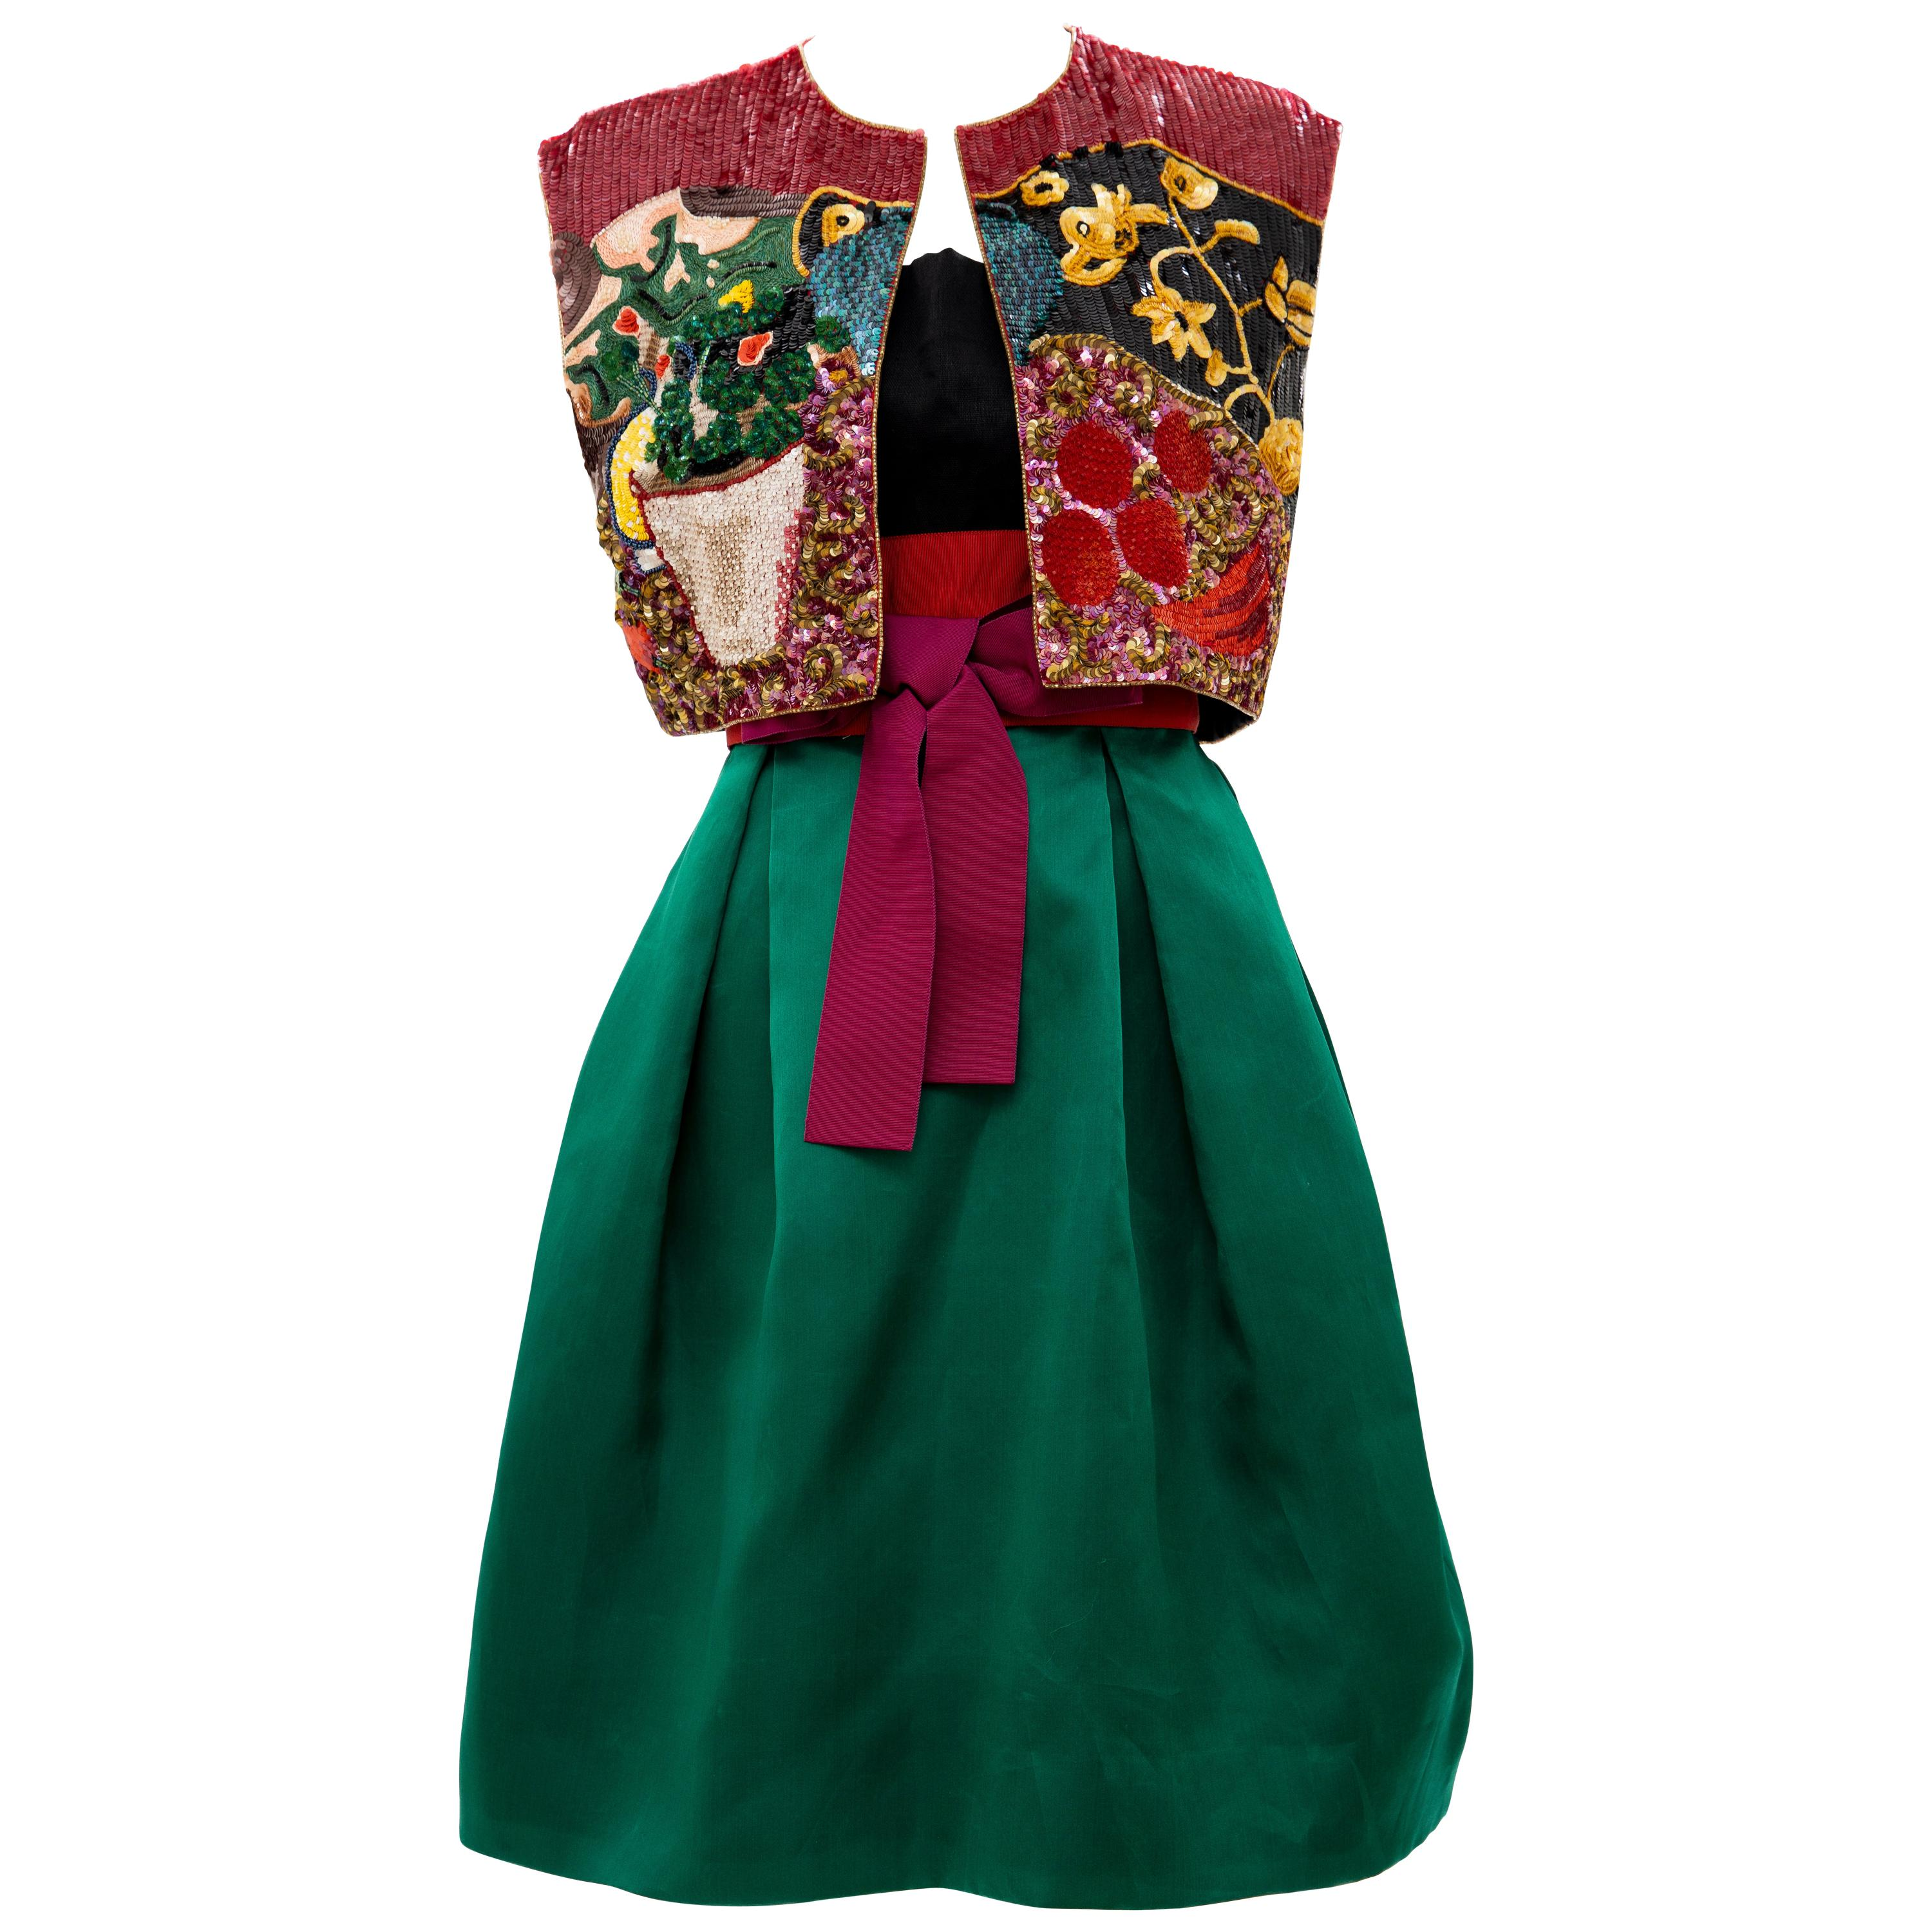 Bill Blass Matisse Inspired Embroidered Sequined Dress Ensemble, Spring 1988